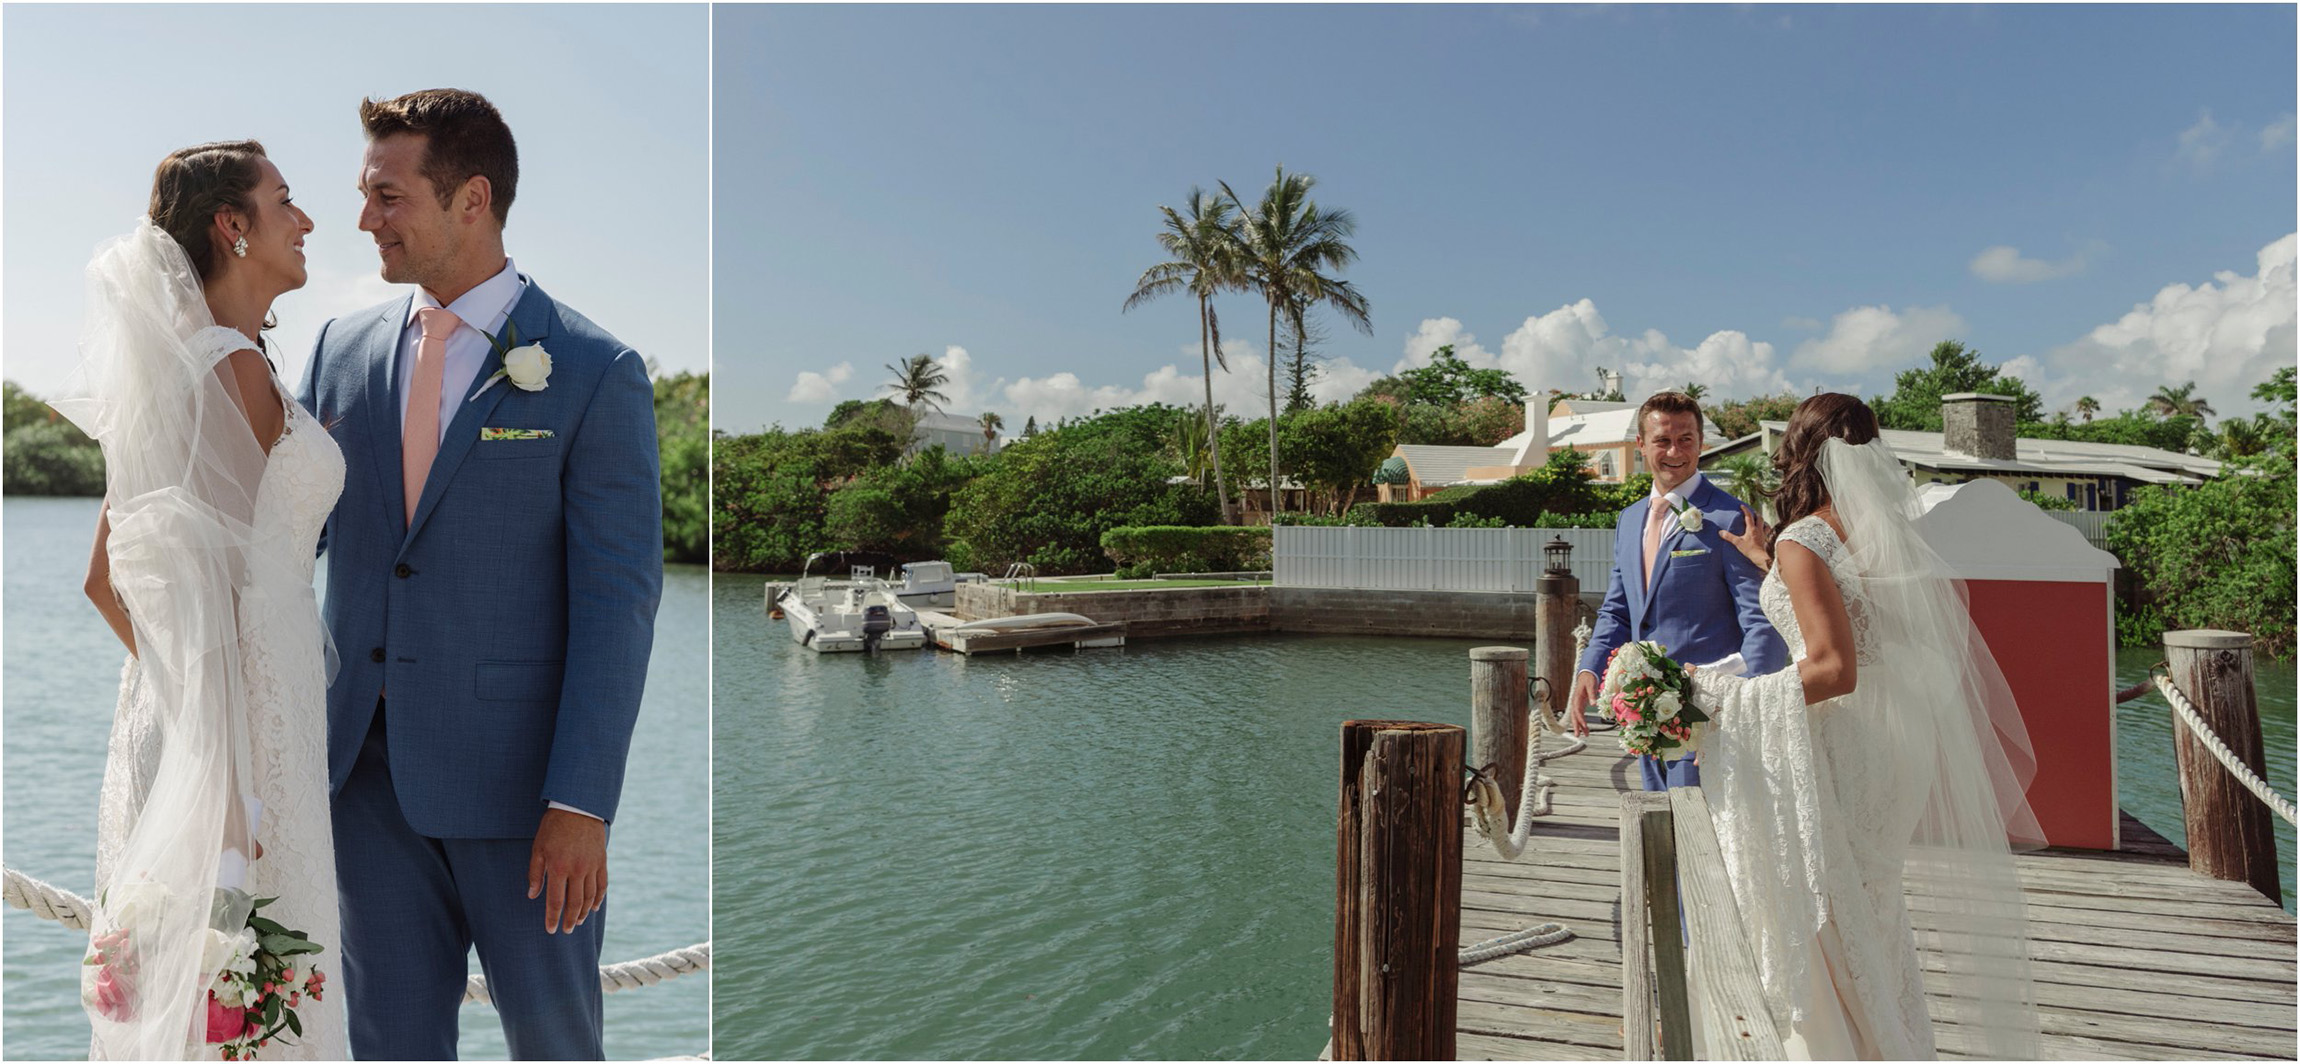 ©FianderFoto_Bermuda Wedding Photographer_Fairmont Southampton_Wedding_Anna_Thomas_115.jpg